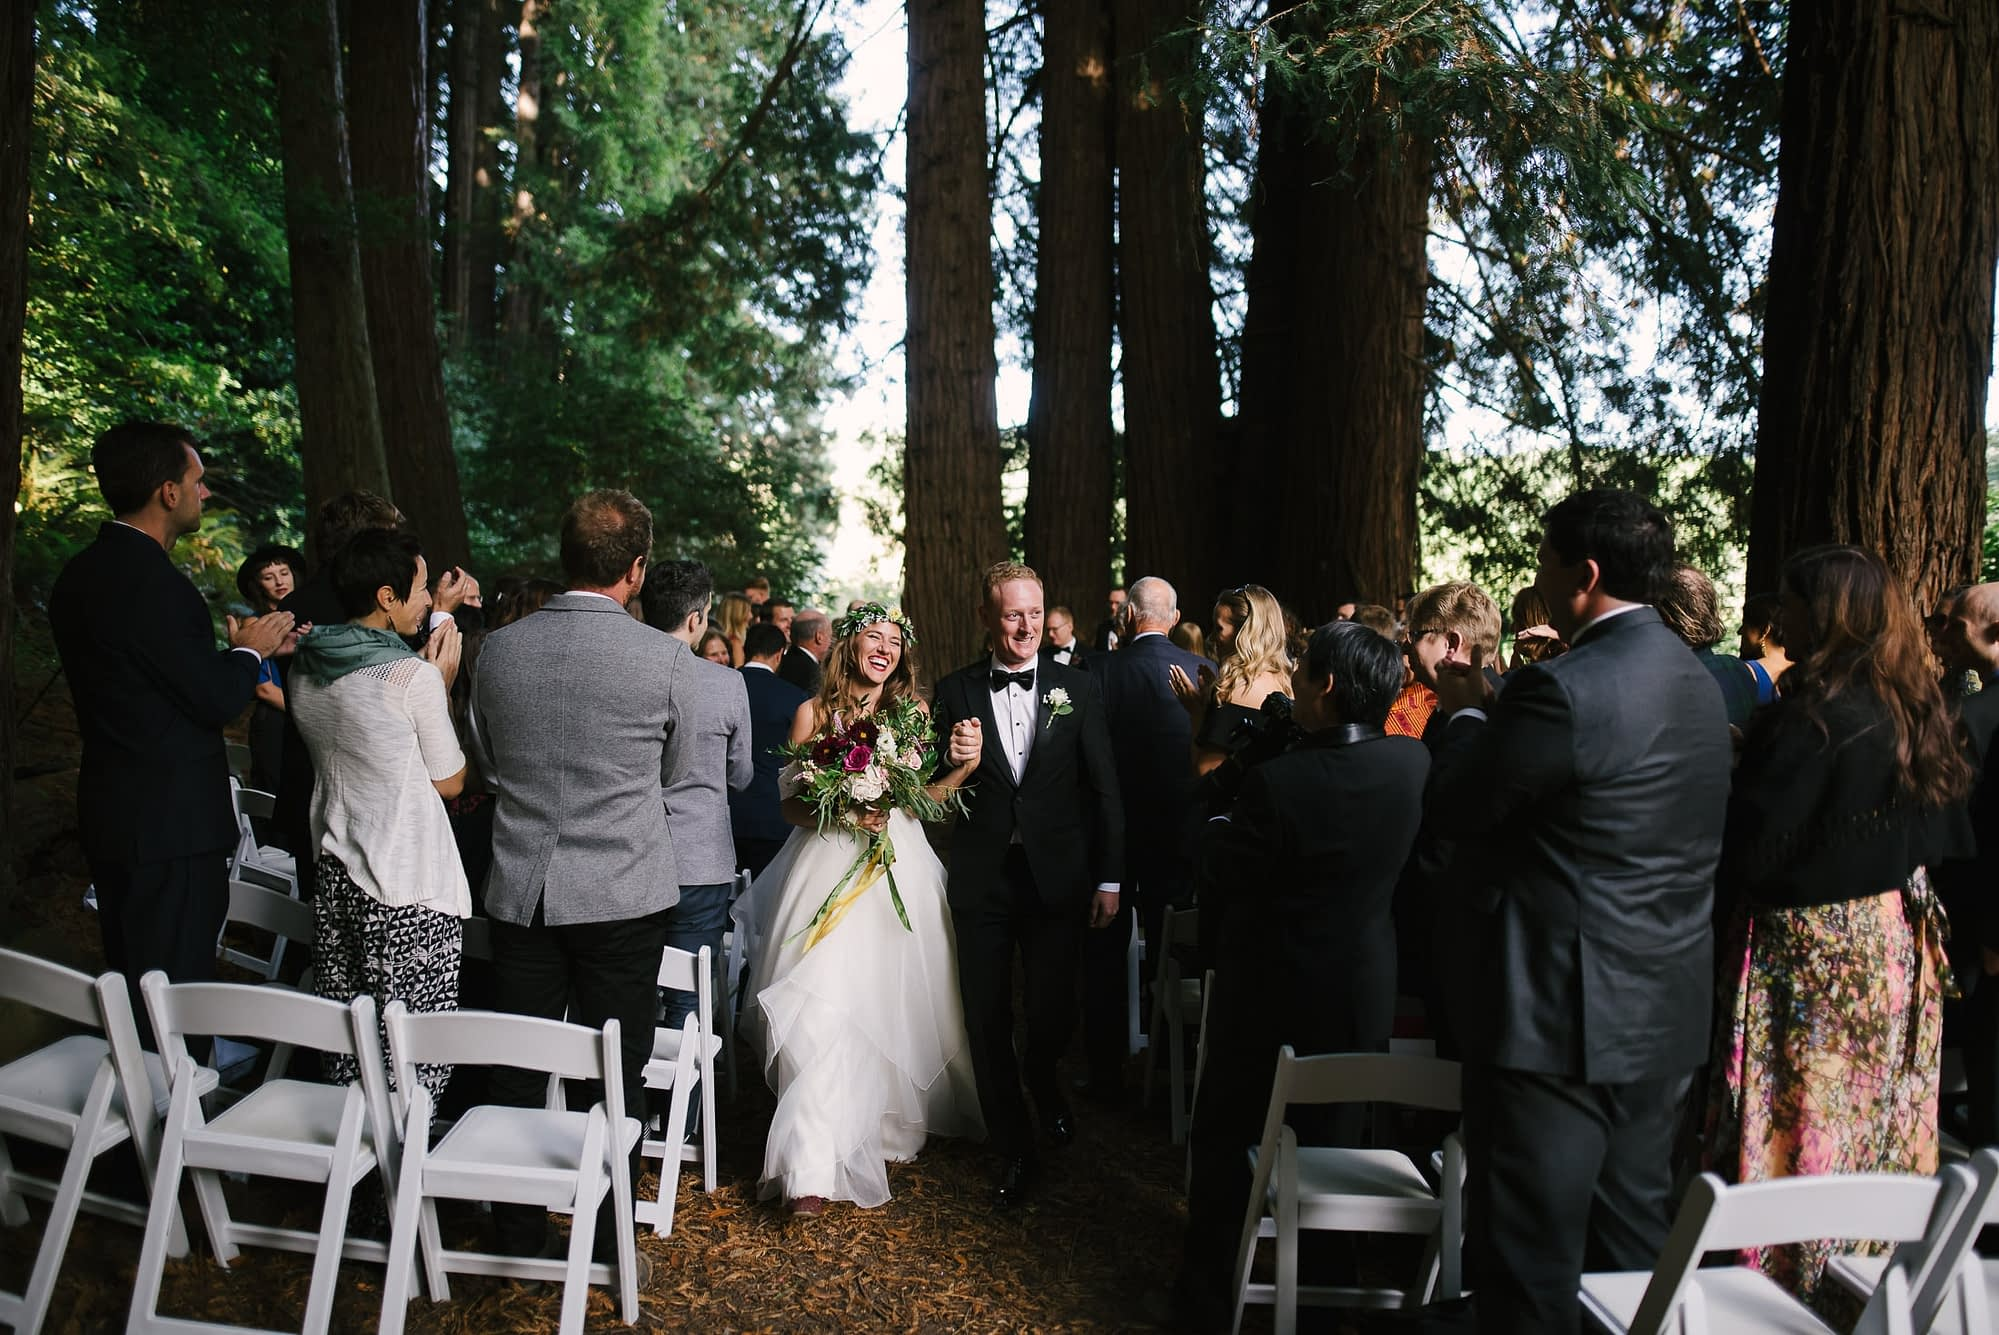 Oz Farm Wedding Ceremony